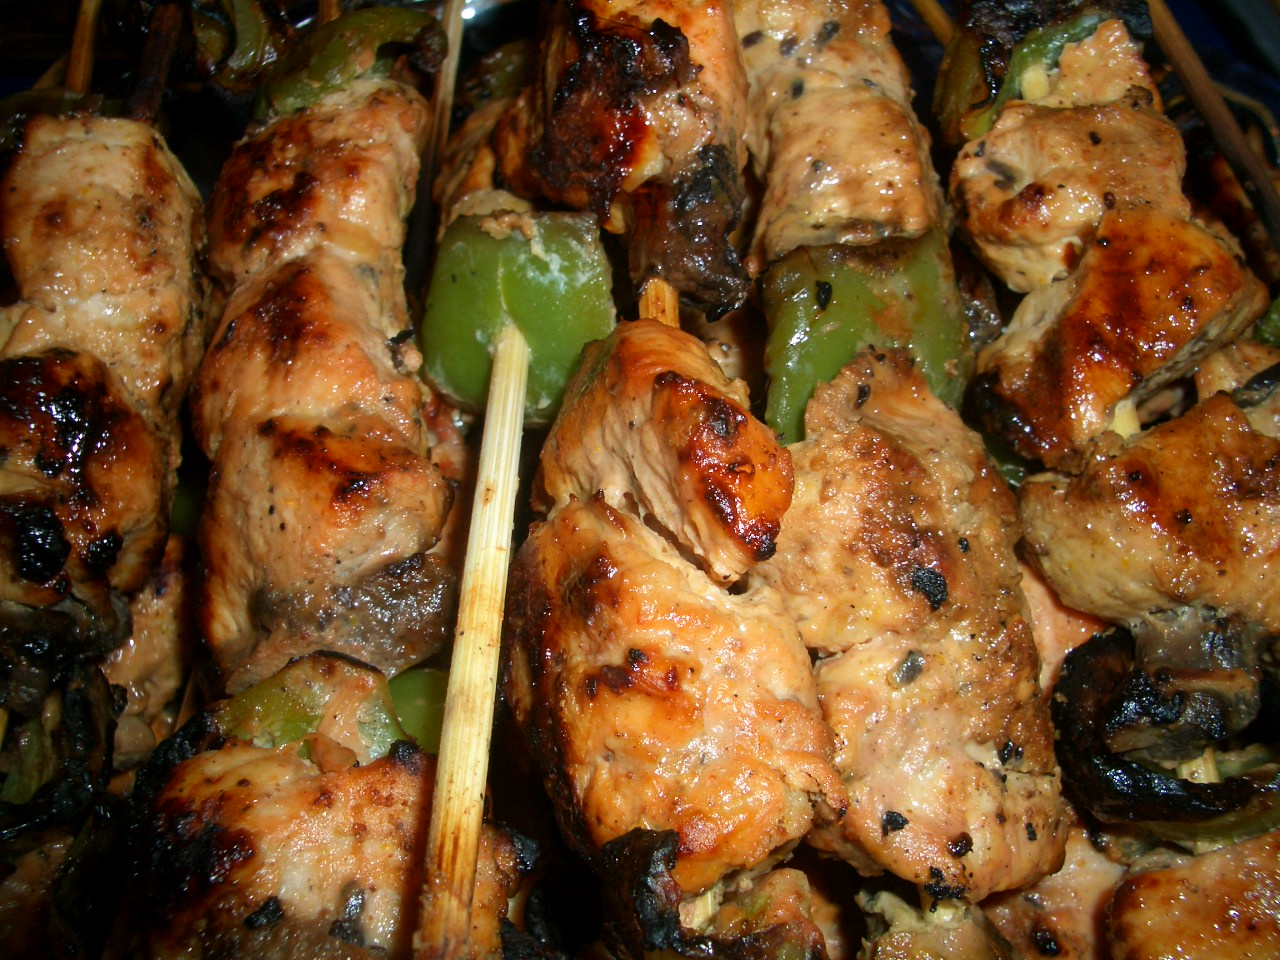 Egyptian food, shish tawook